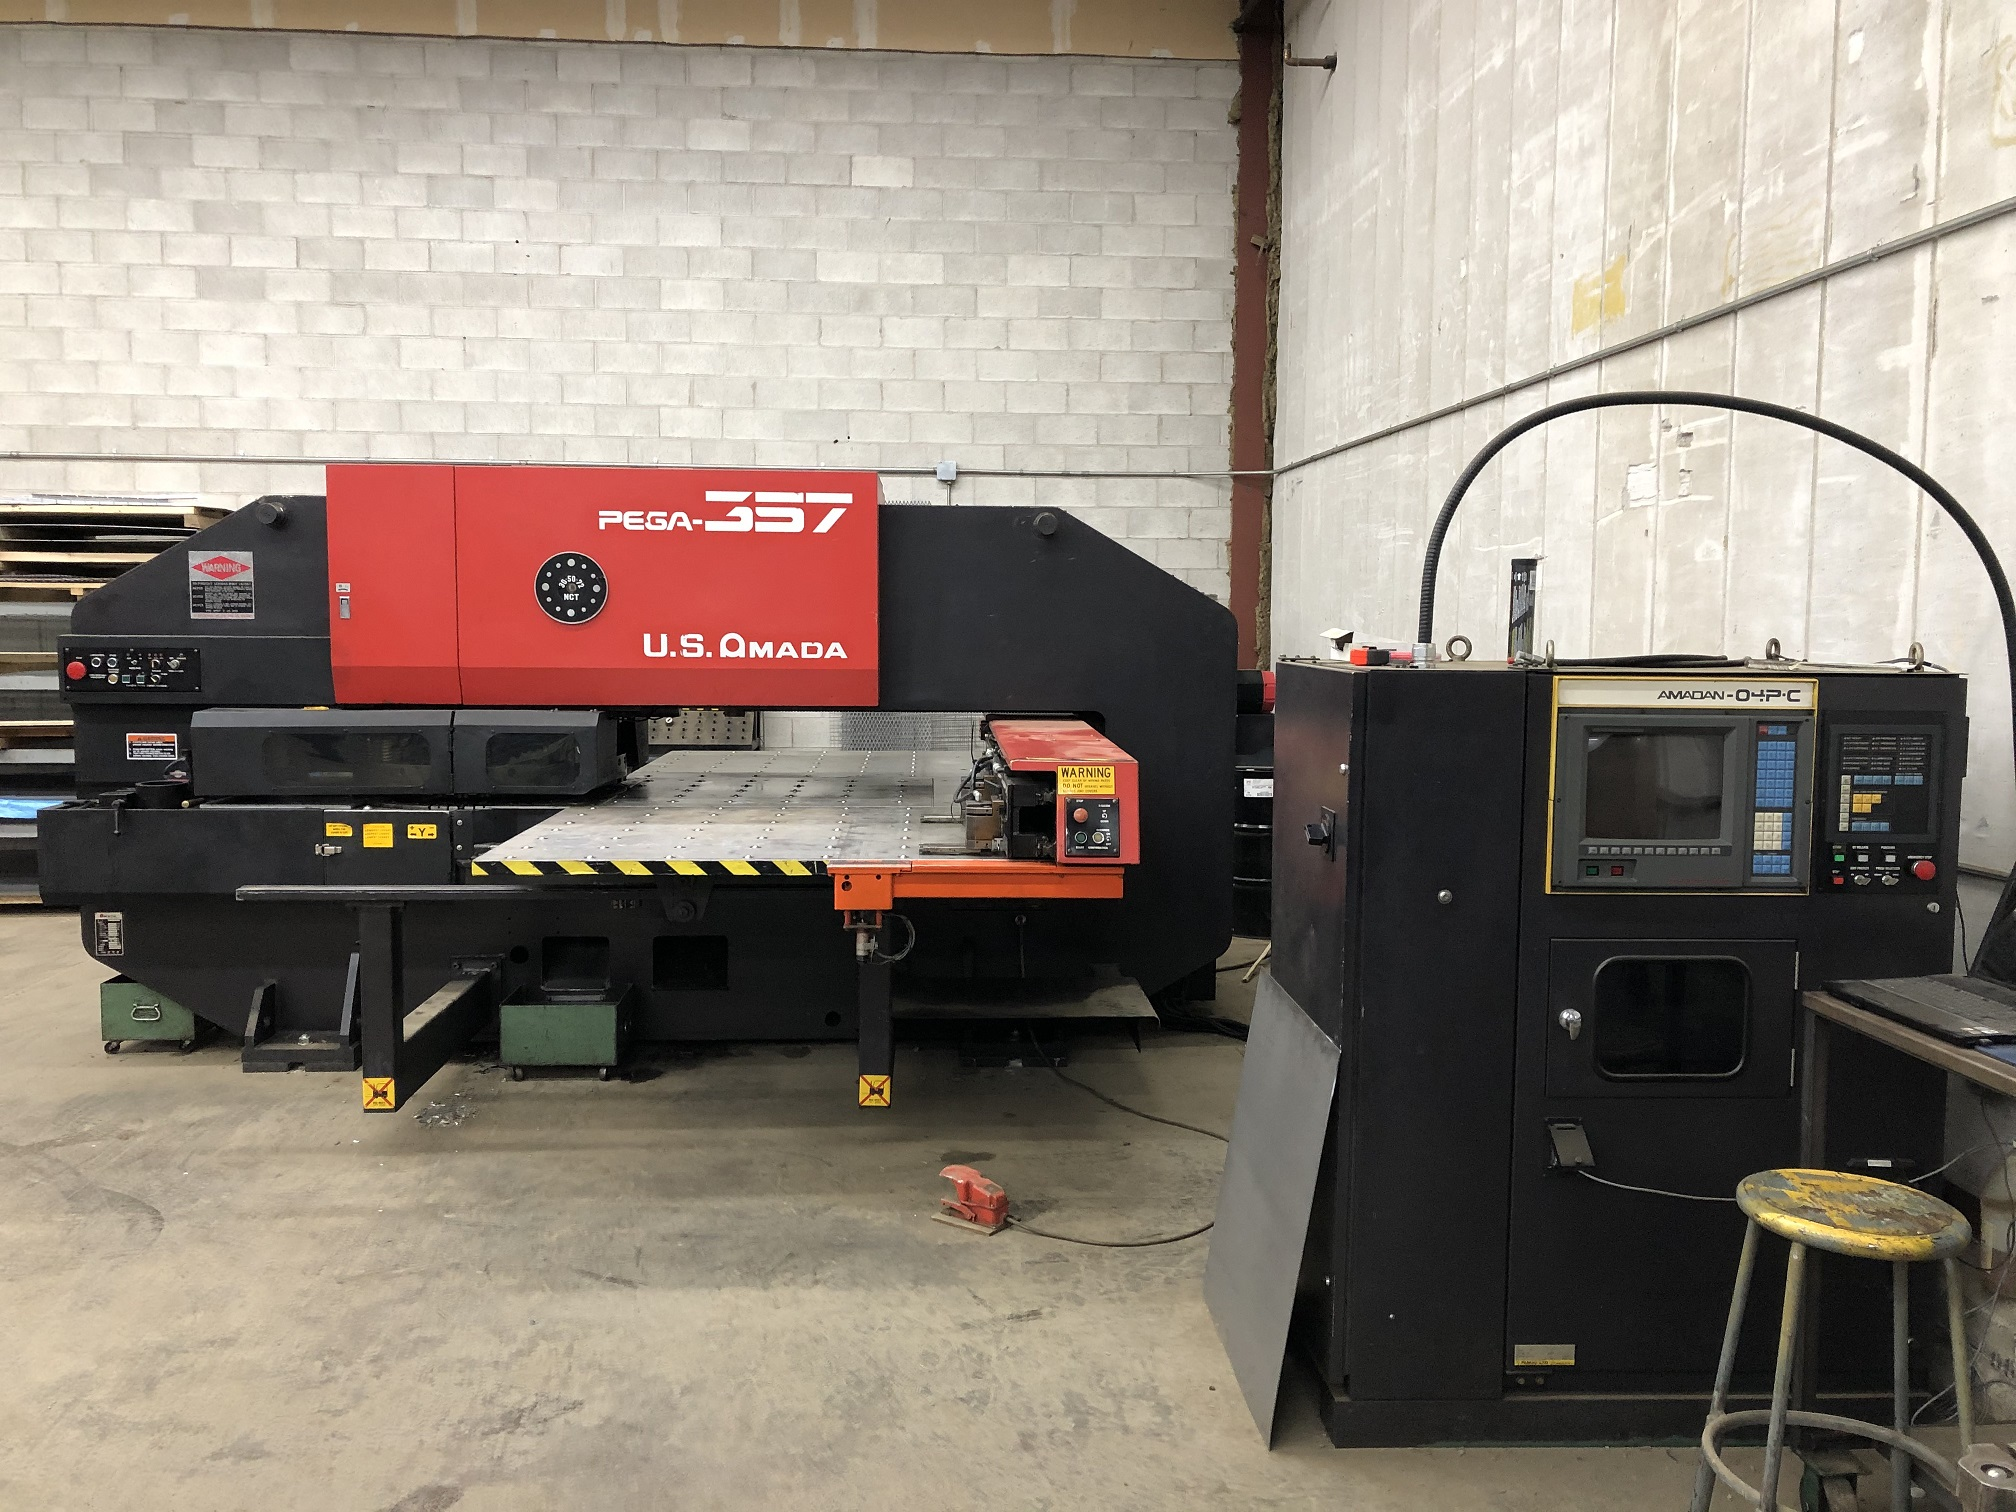 1988 Amada PEGA 357 Turret Punch Press